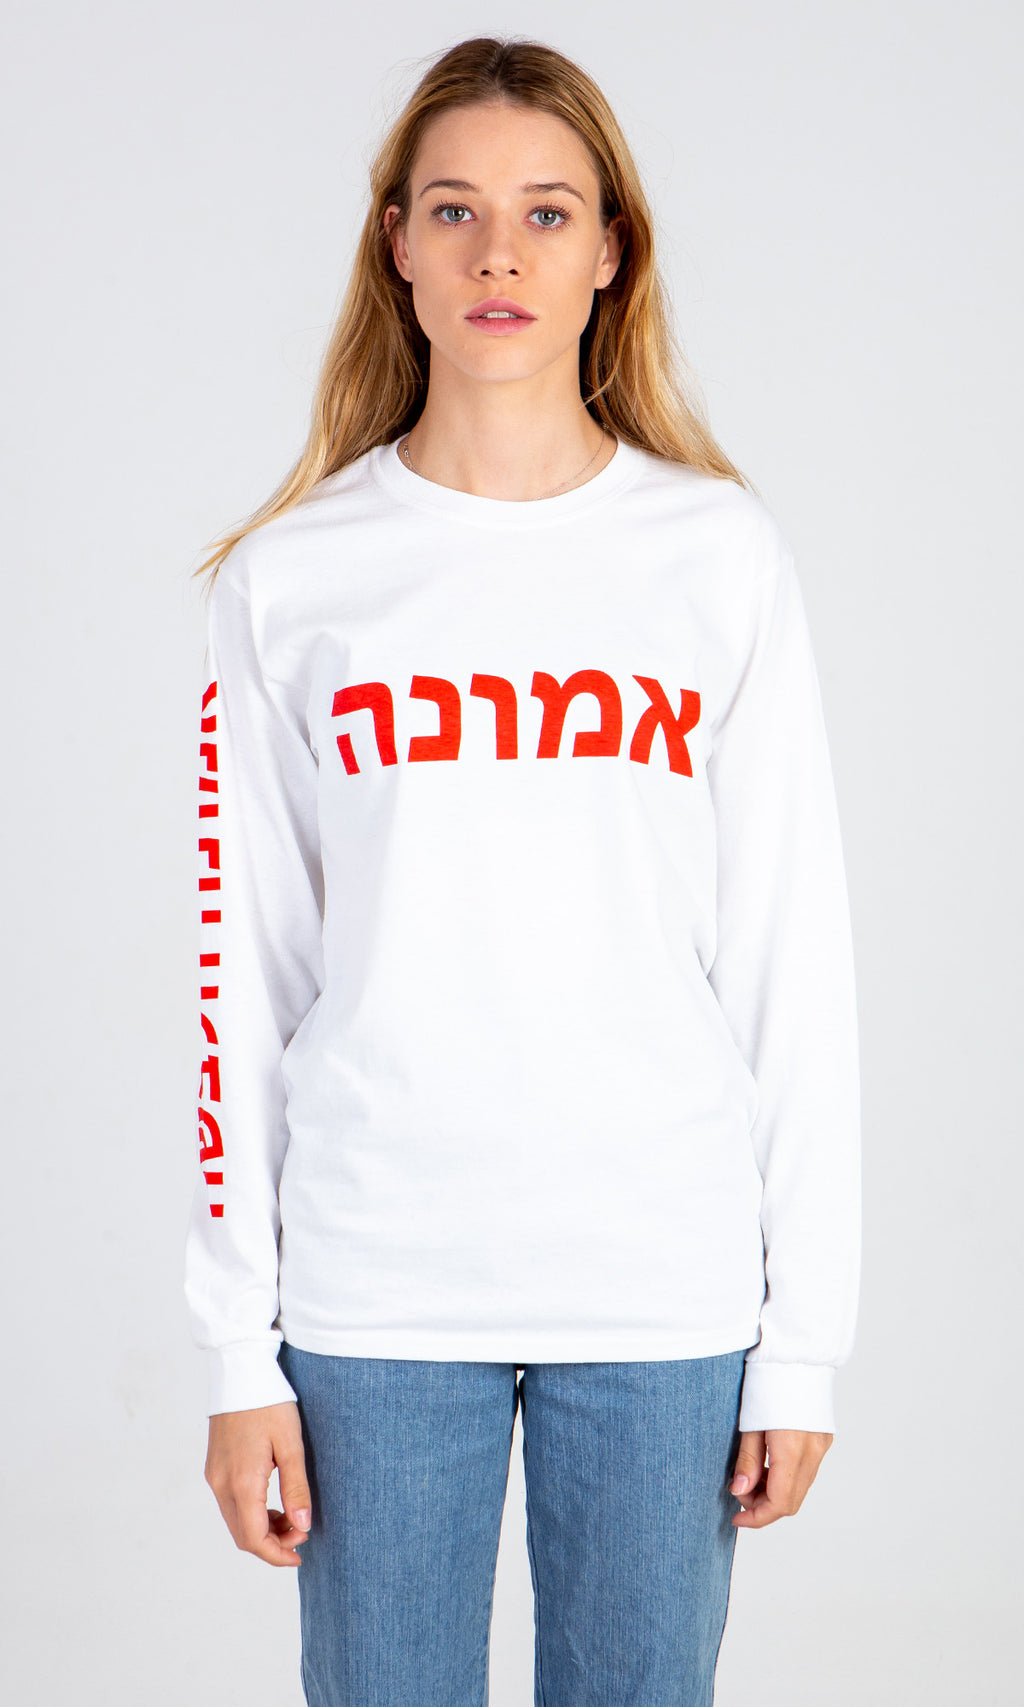 Hebrew Long Sleeve T-Shirt